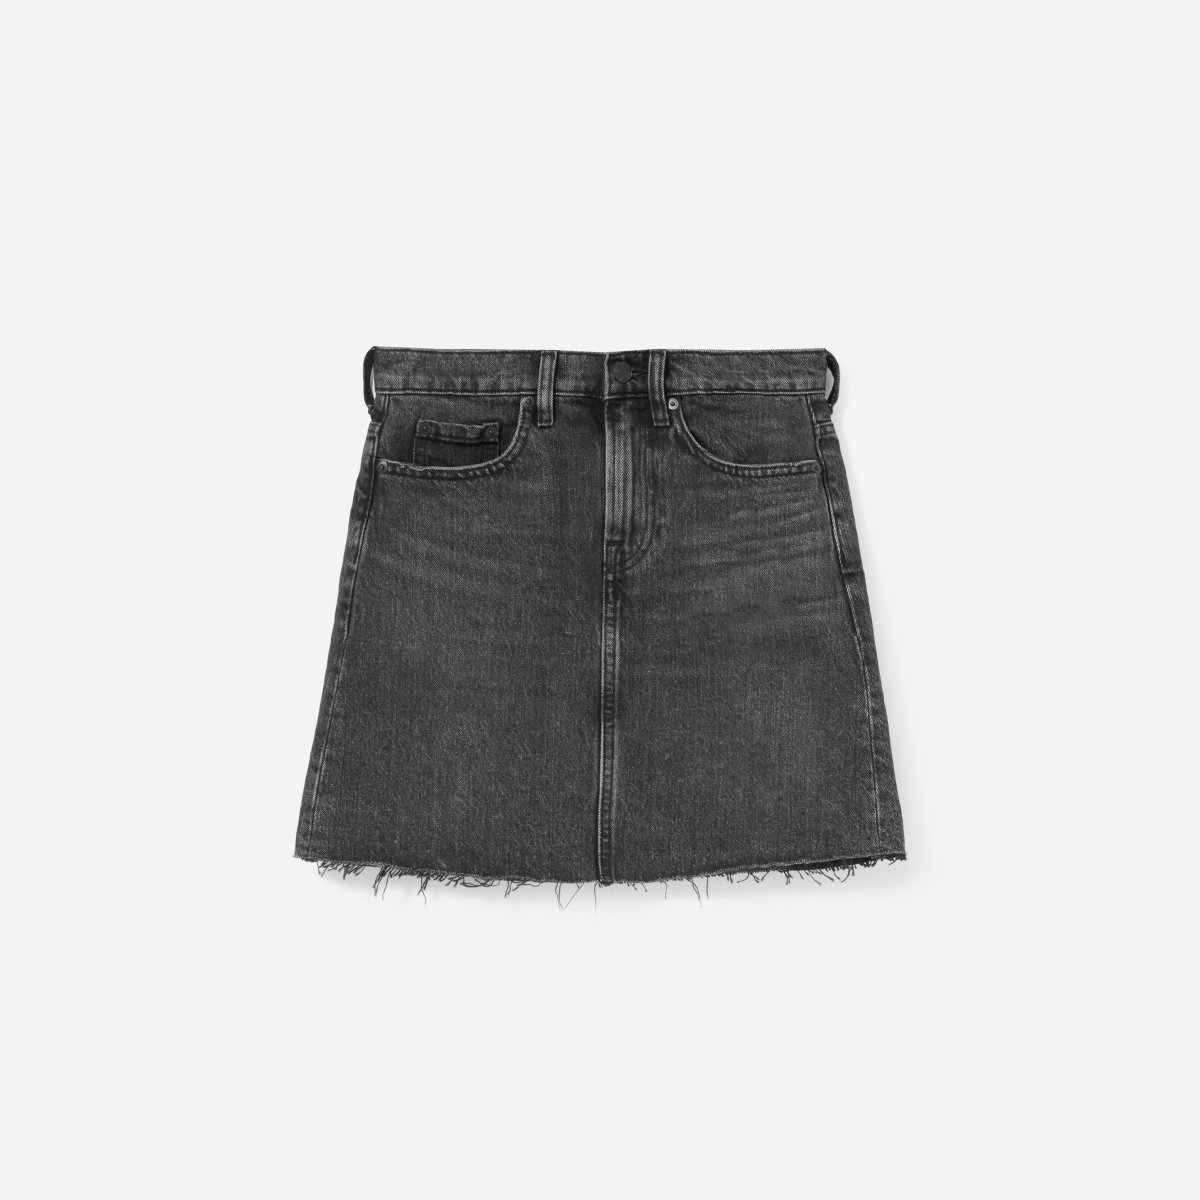 7445dfe29b227 Women's Denim Skirt | Everlane